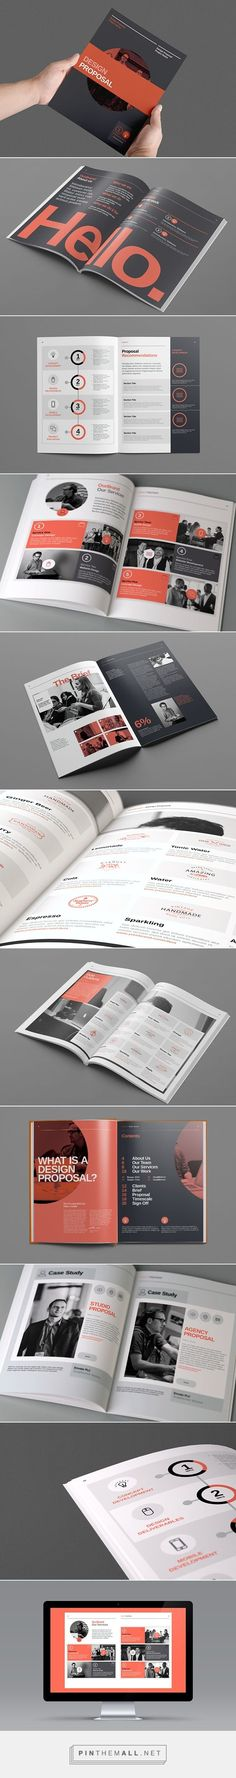 Get an attractive trifold or bifold book layout,skype:qketing